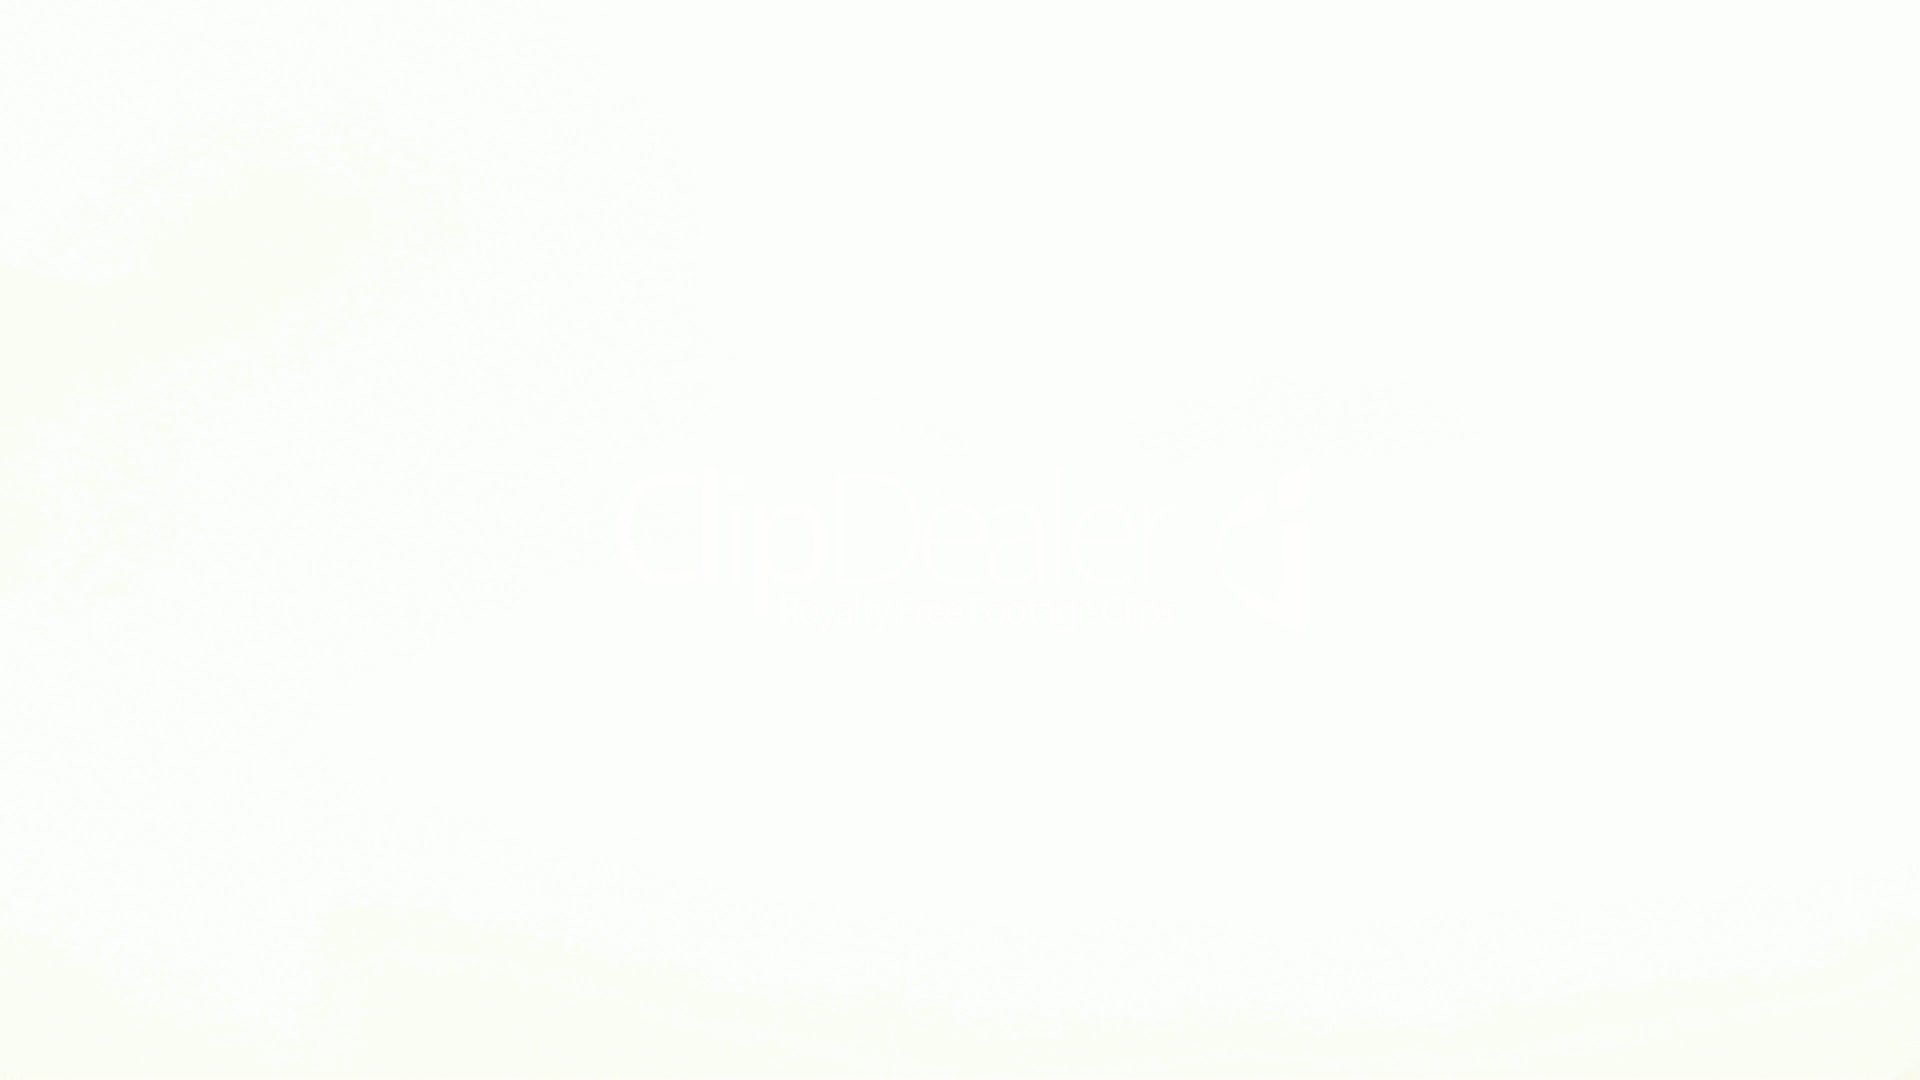 White Background Wallpaper - WallpaperSafari